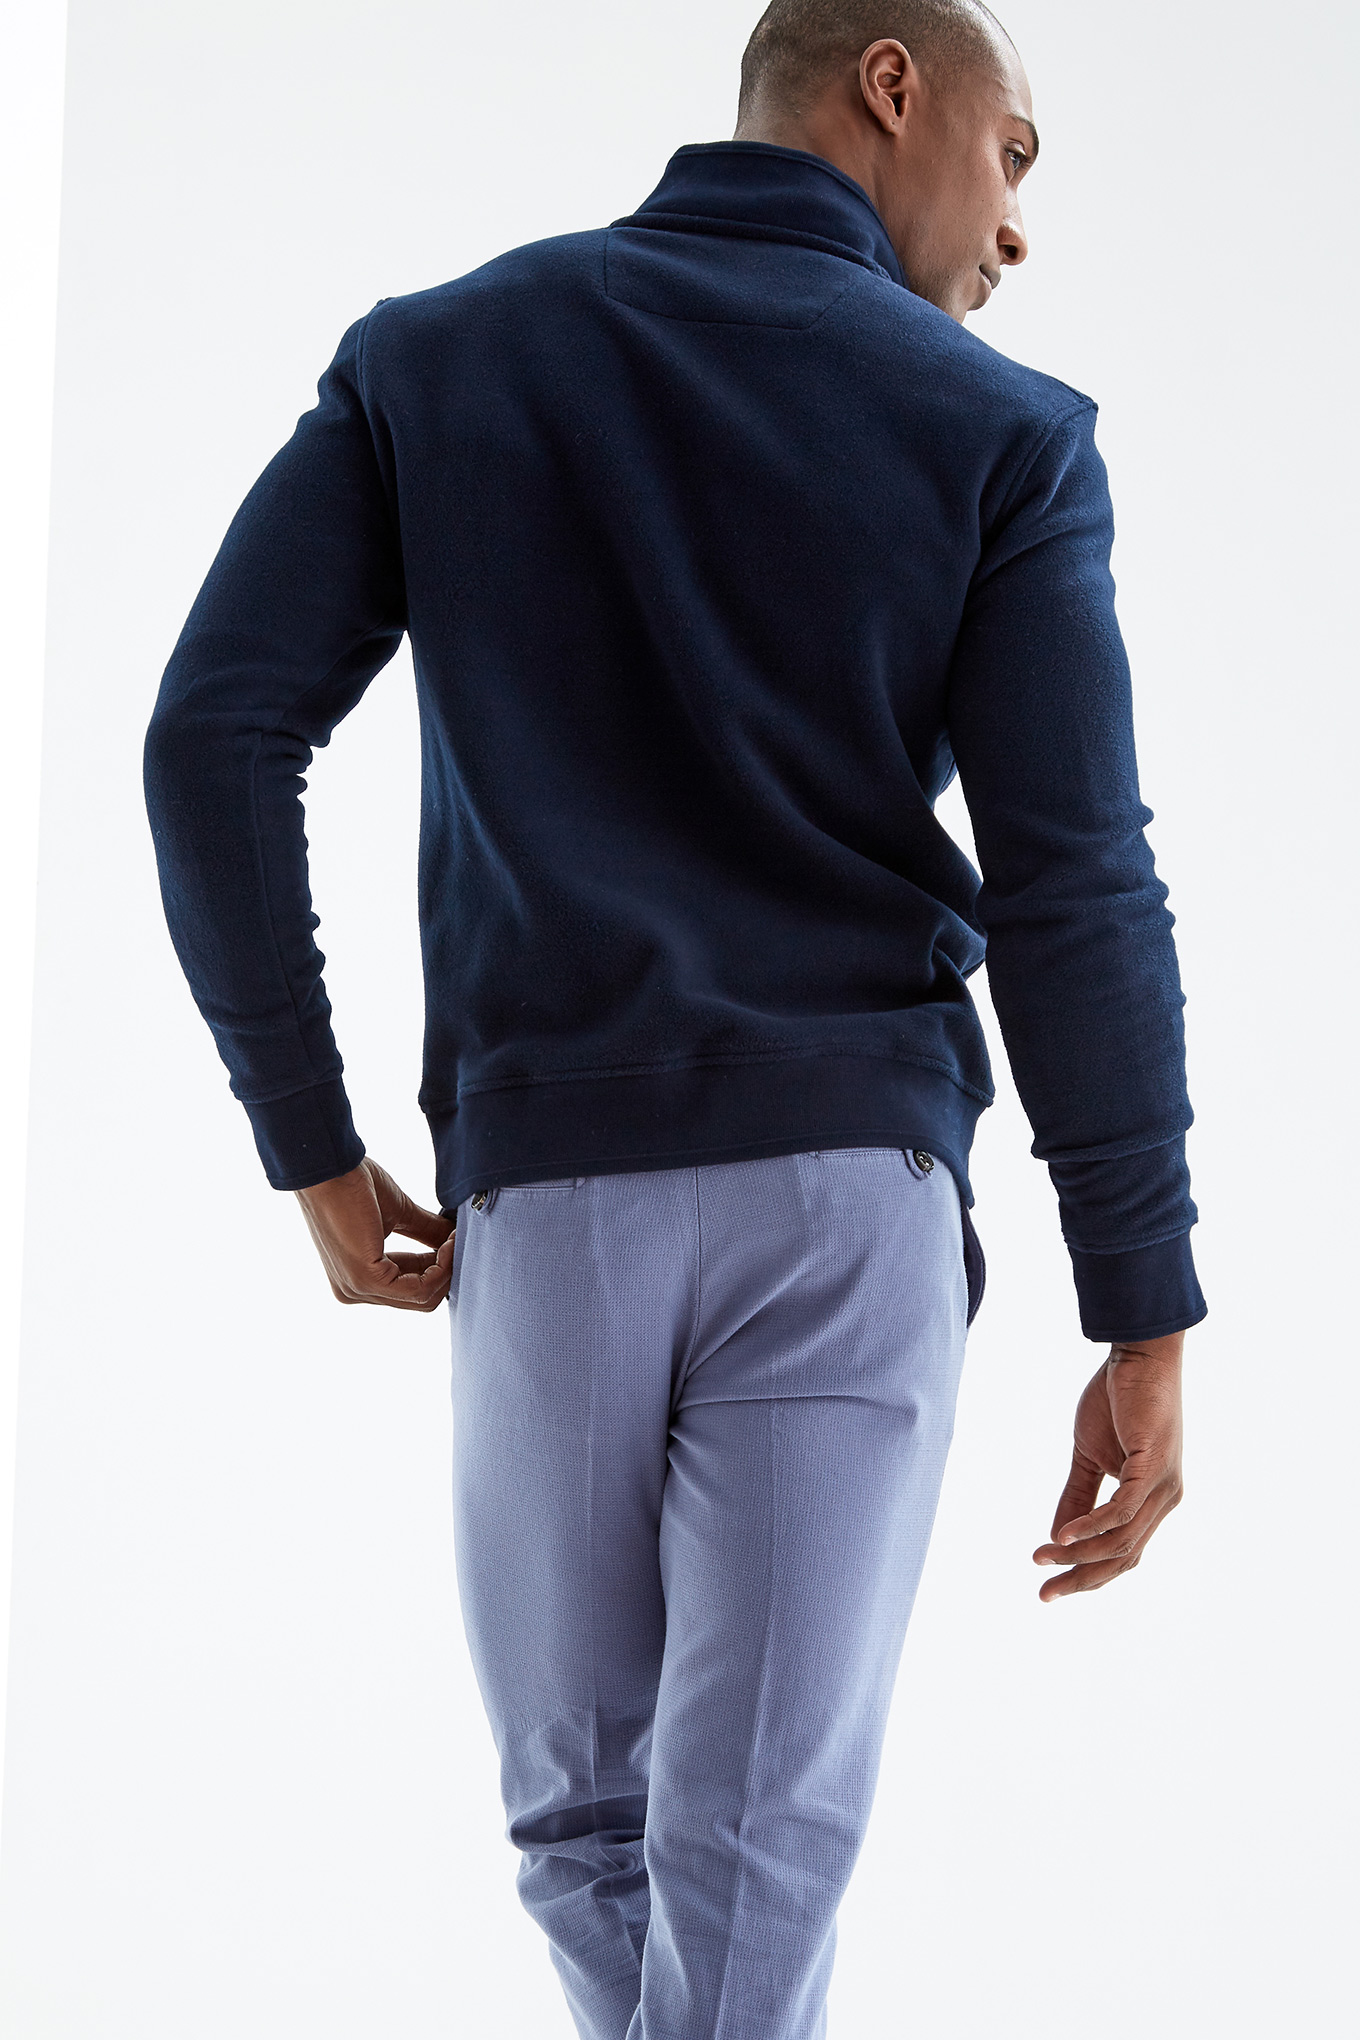 Polar Fleece Dark Blue Sport Man